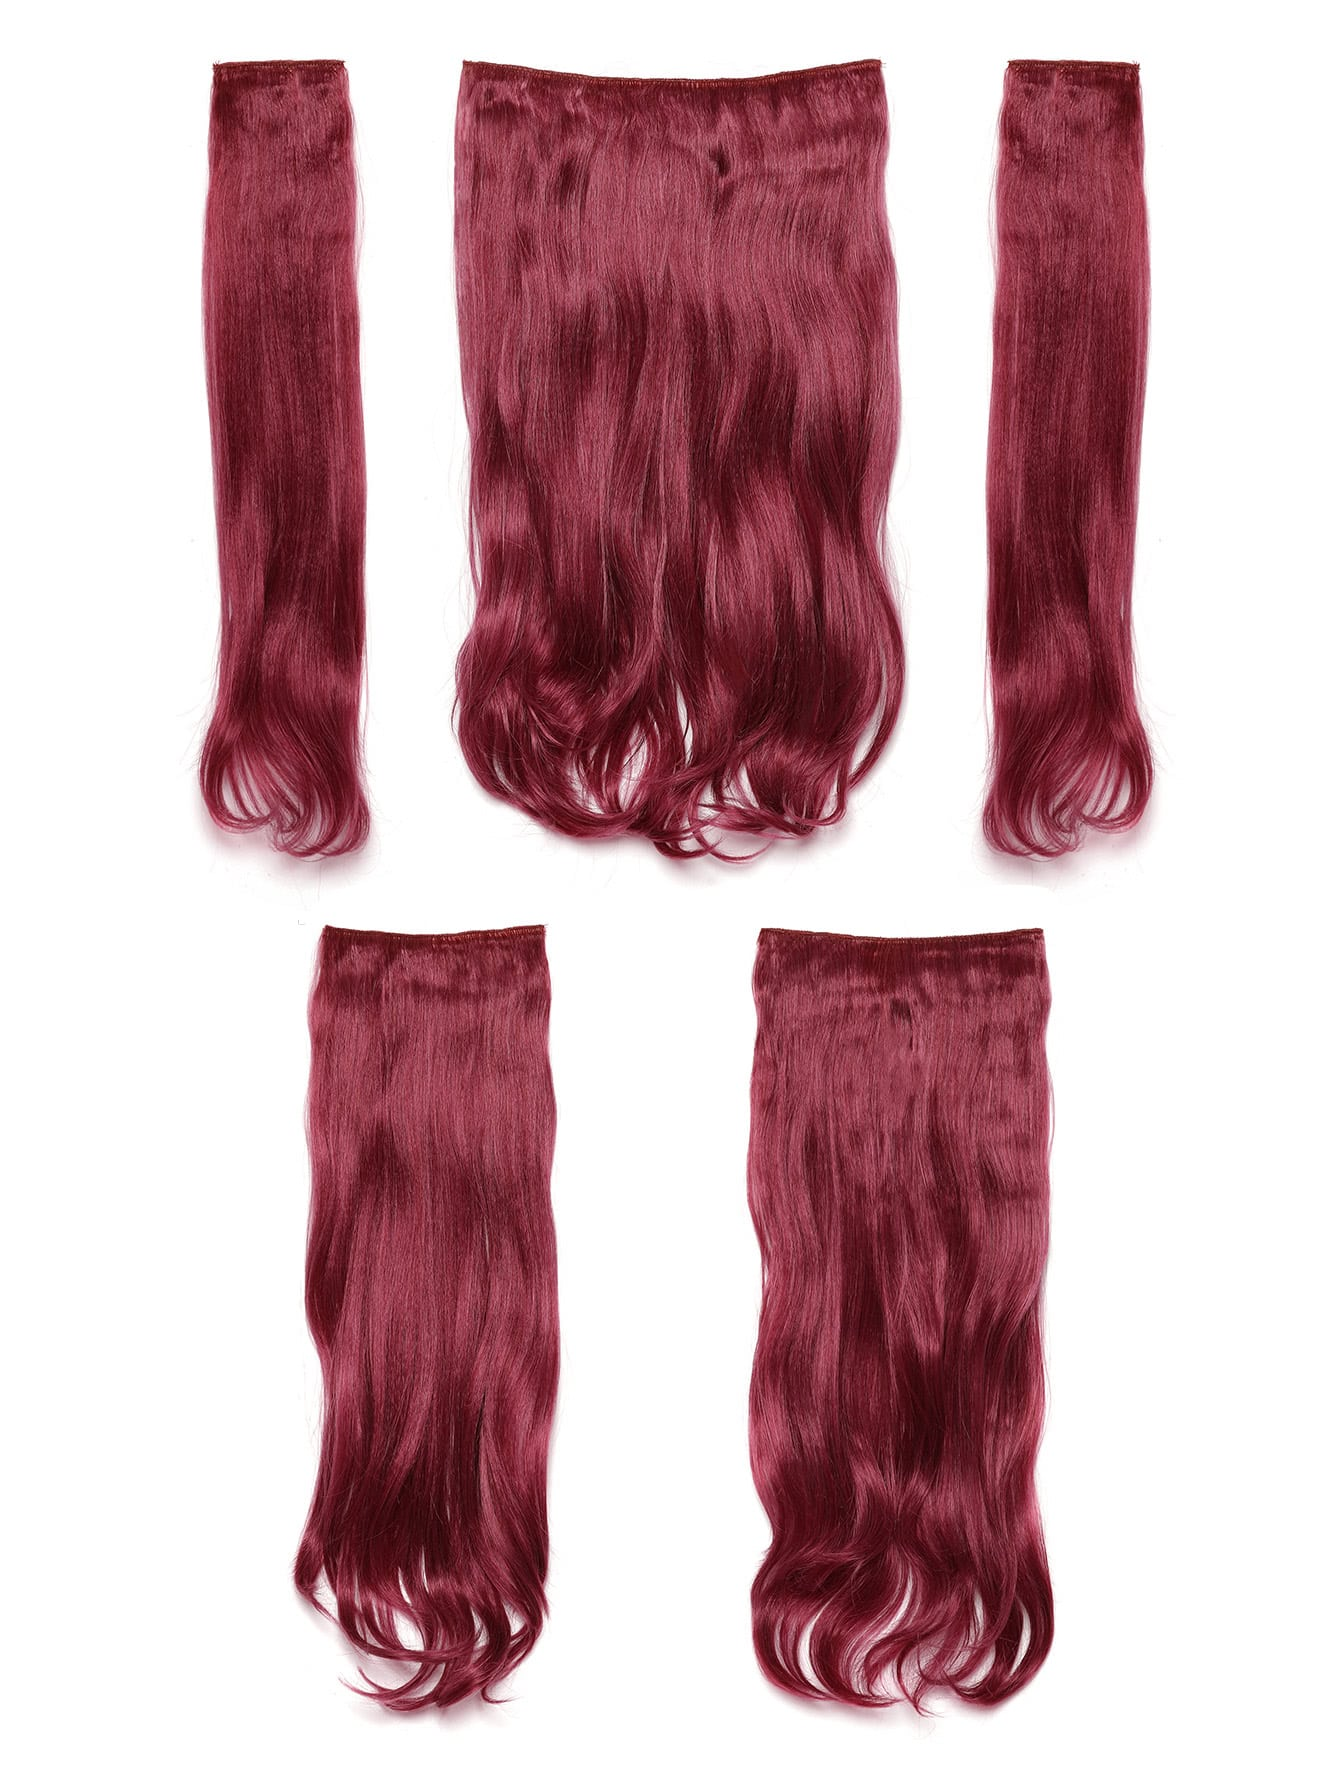 Burgundy Clip In Soft Wave Hair Extension 5pcs